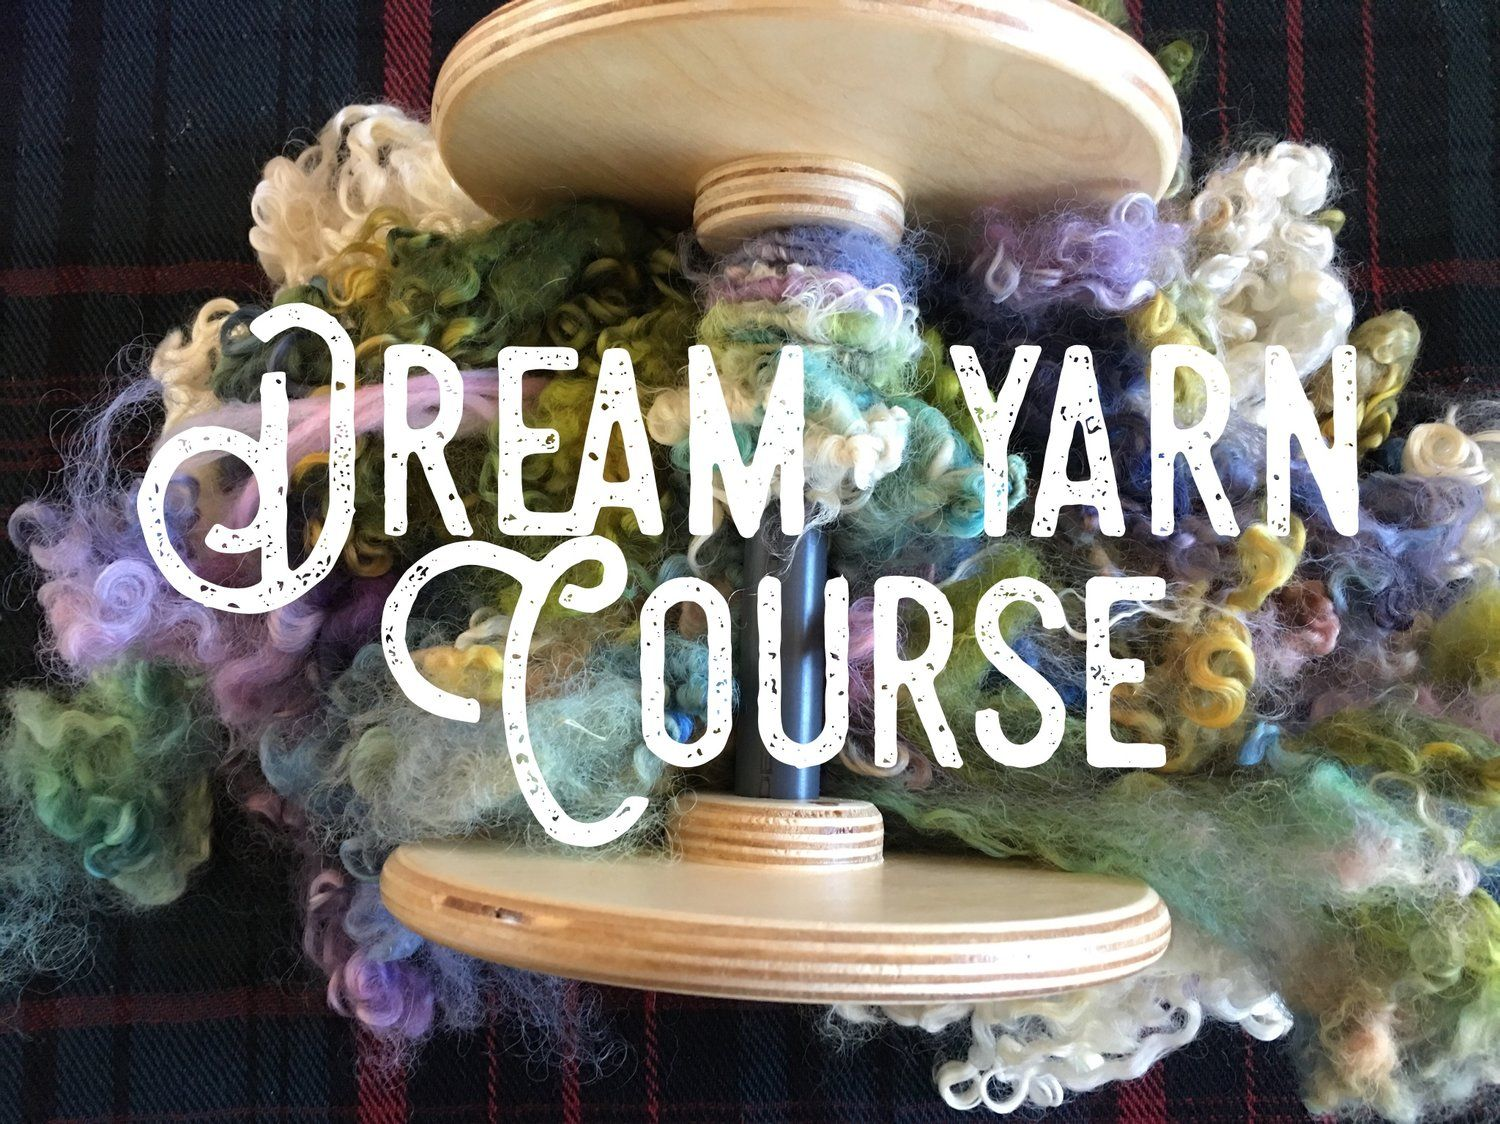 Learn to spin your own yarn with confidence and creativity